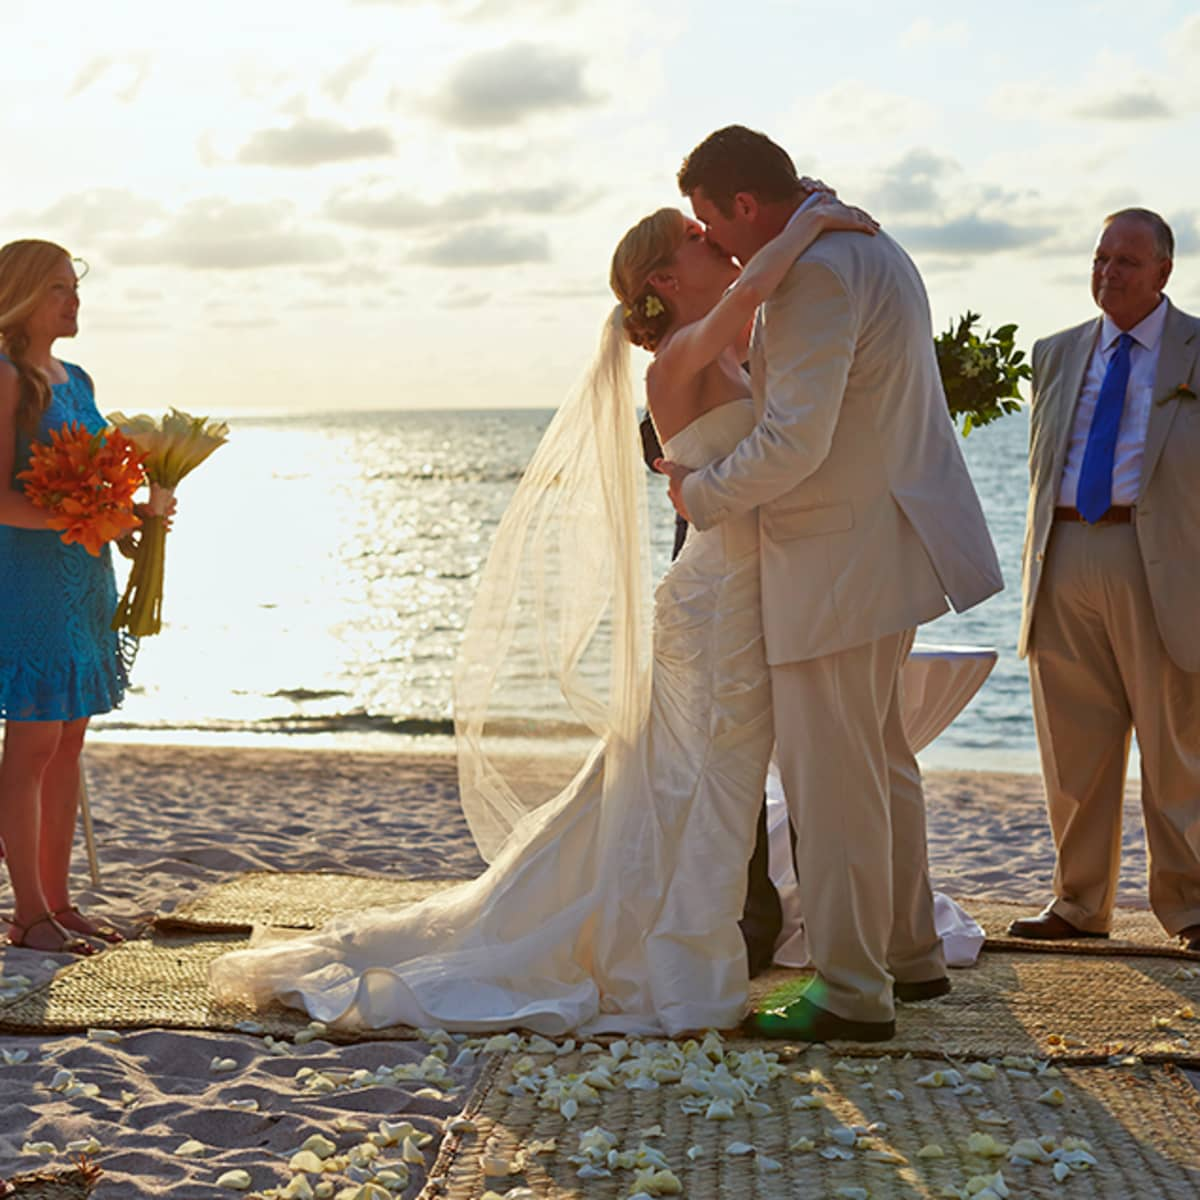 Christine And Nick Share Their First Kiss As Husband Wife Against The Beautiful Backdrop Of